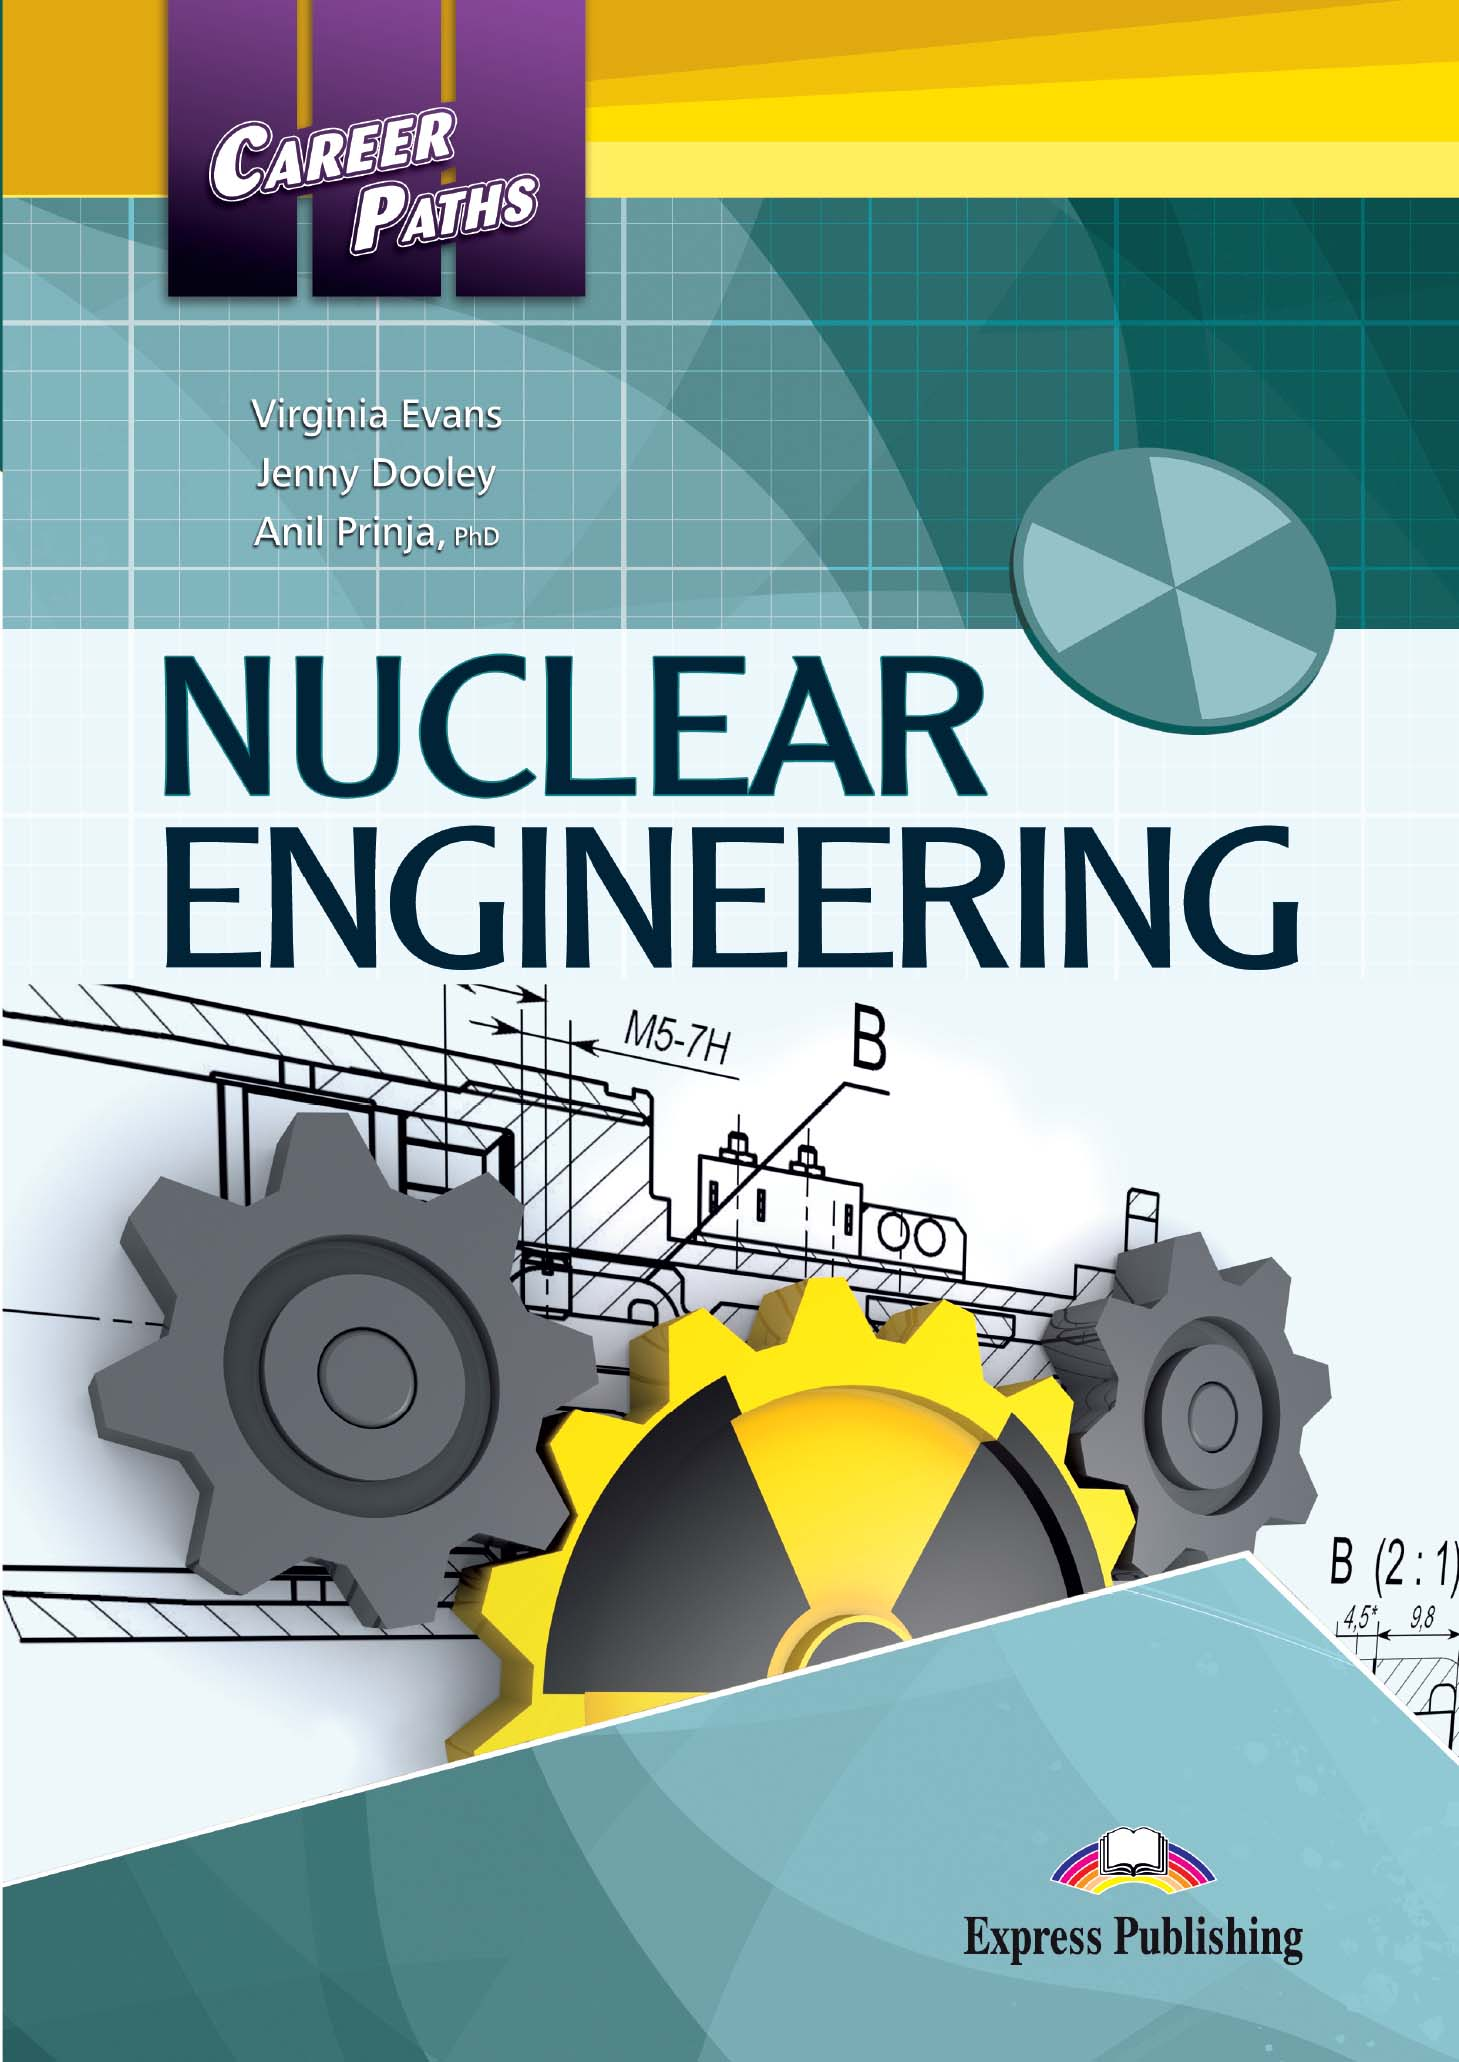 Career Paths: Nuclear Engineering - Student's Book (with Digibooks App)